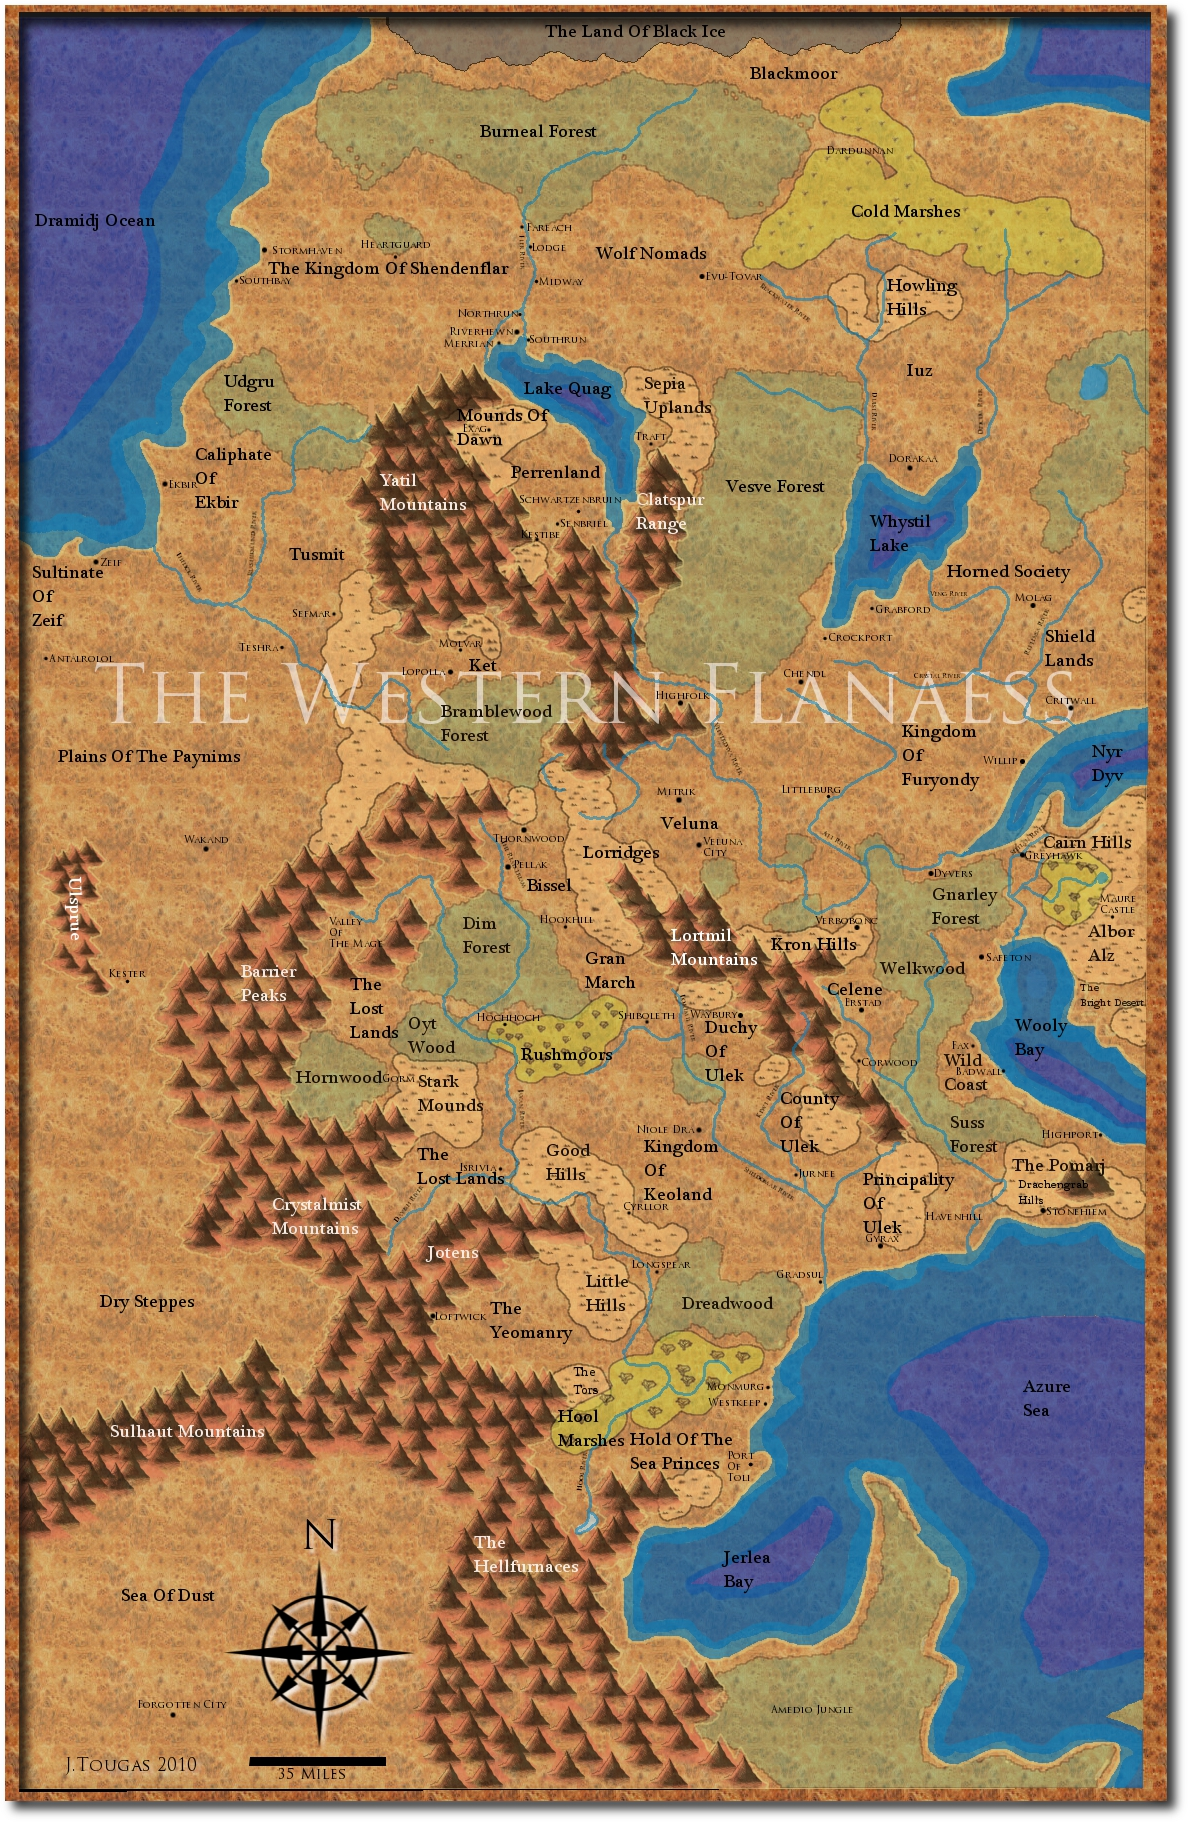 The Region that holds my Kingdom of Shendenflar Campaign Setting. For the campaign purposes the Tiger Nomads never existed and The Kingdom Of Shendenflar occupies those lands.